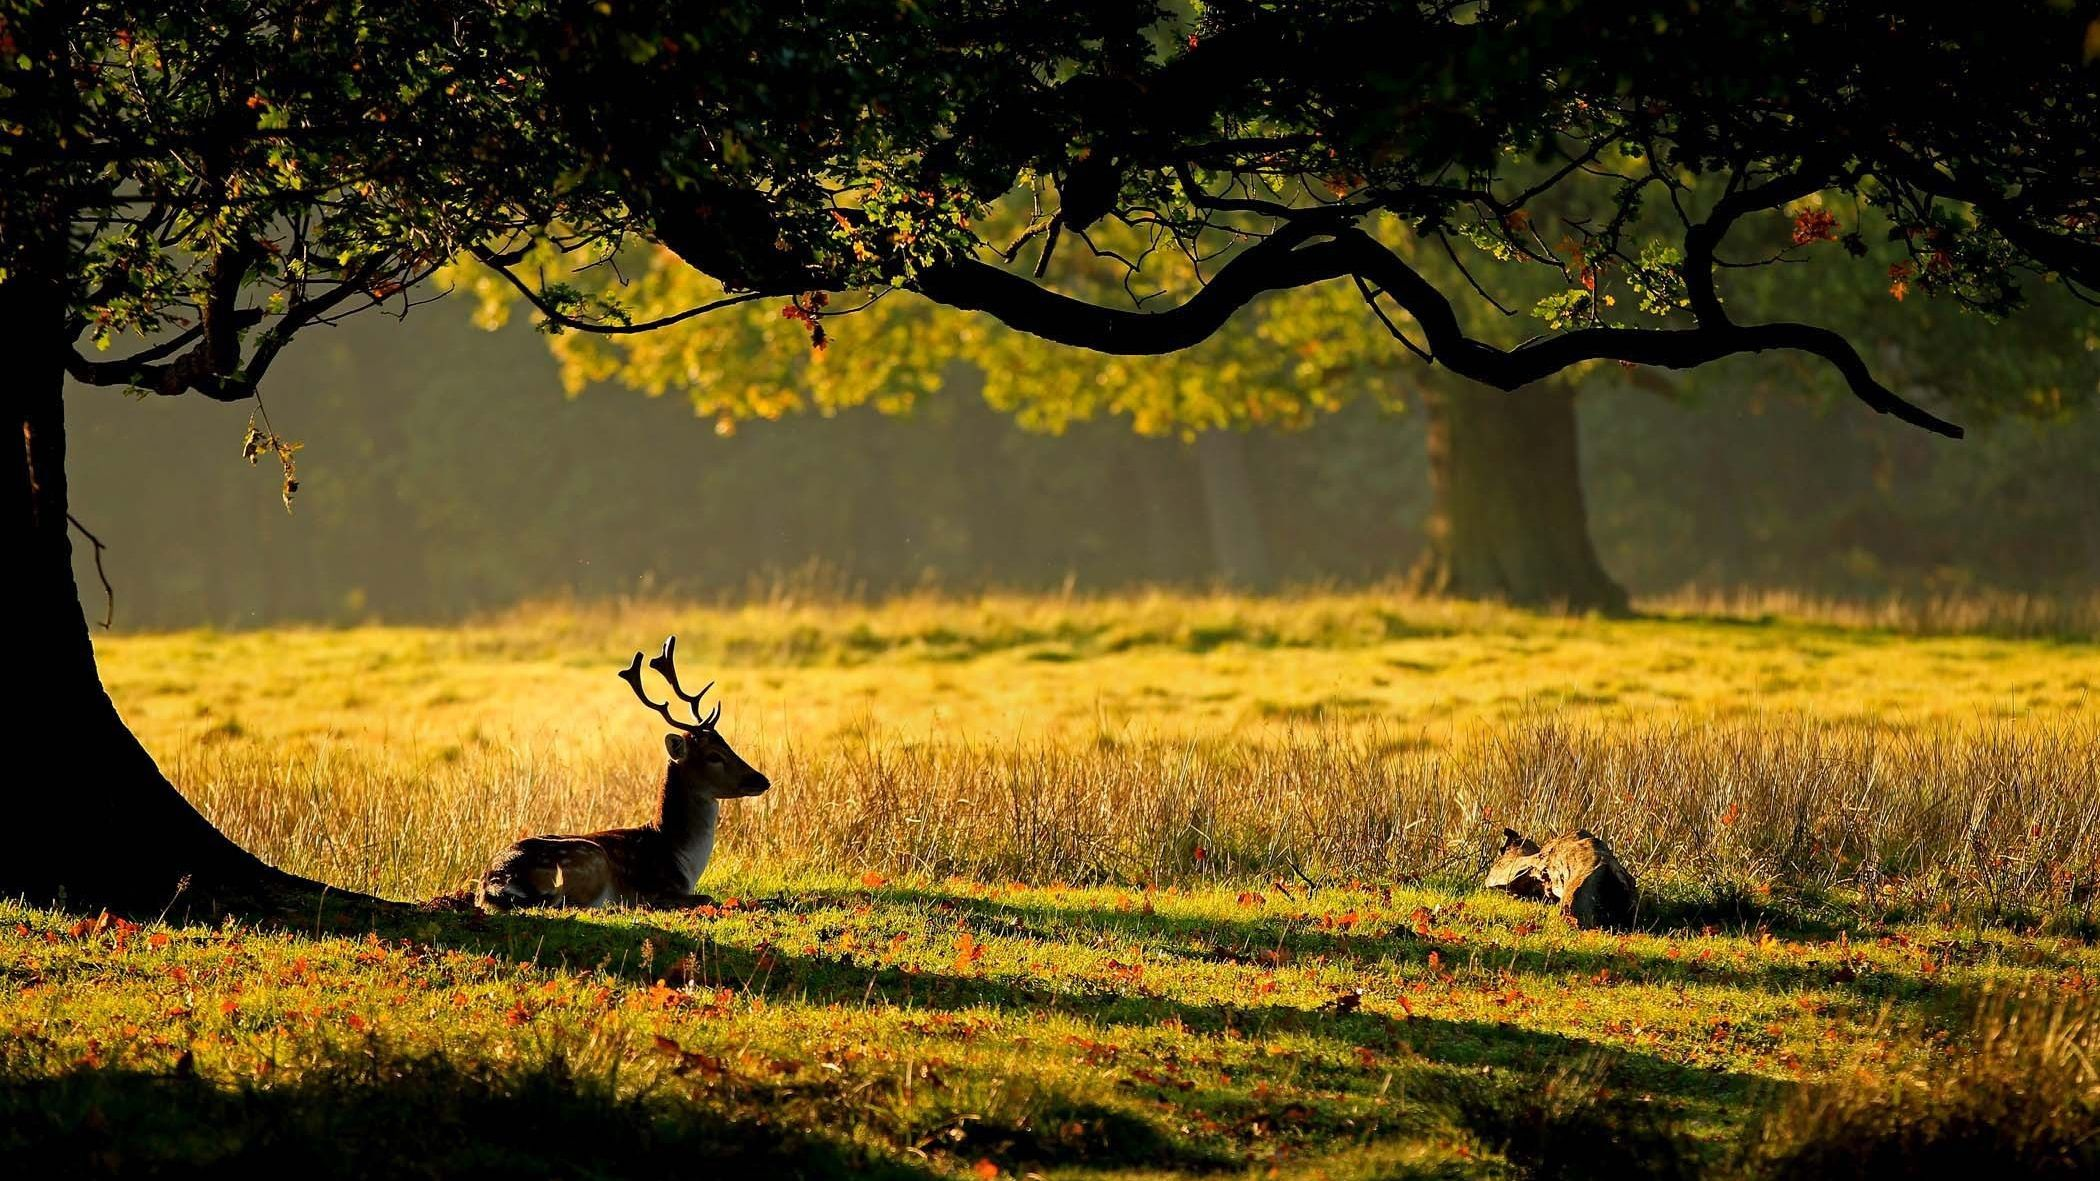 Good Morning Goodmorning Good Morning Sunrise Wow Newday Health Happiness Friends People Everyone Worl Deer Wallpaper Autumn Animals Wild Nature